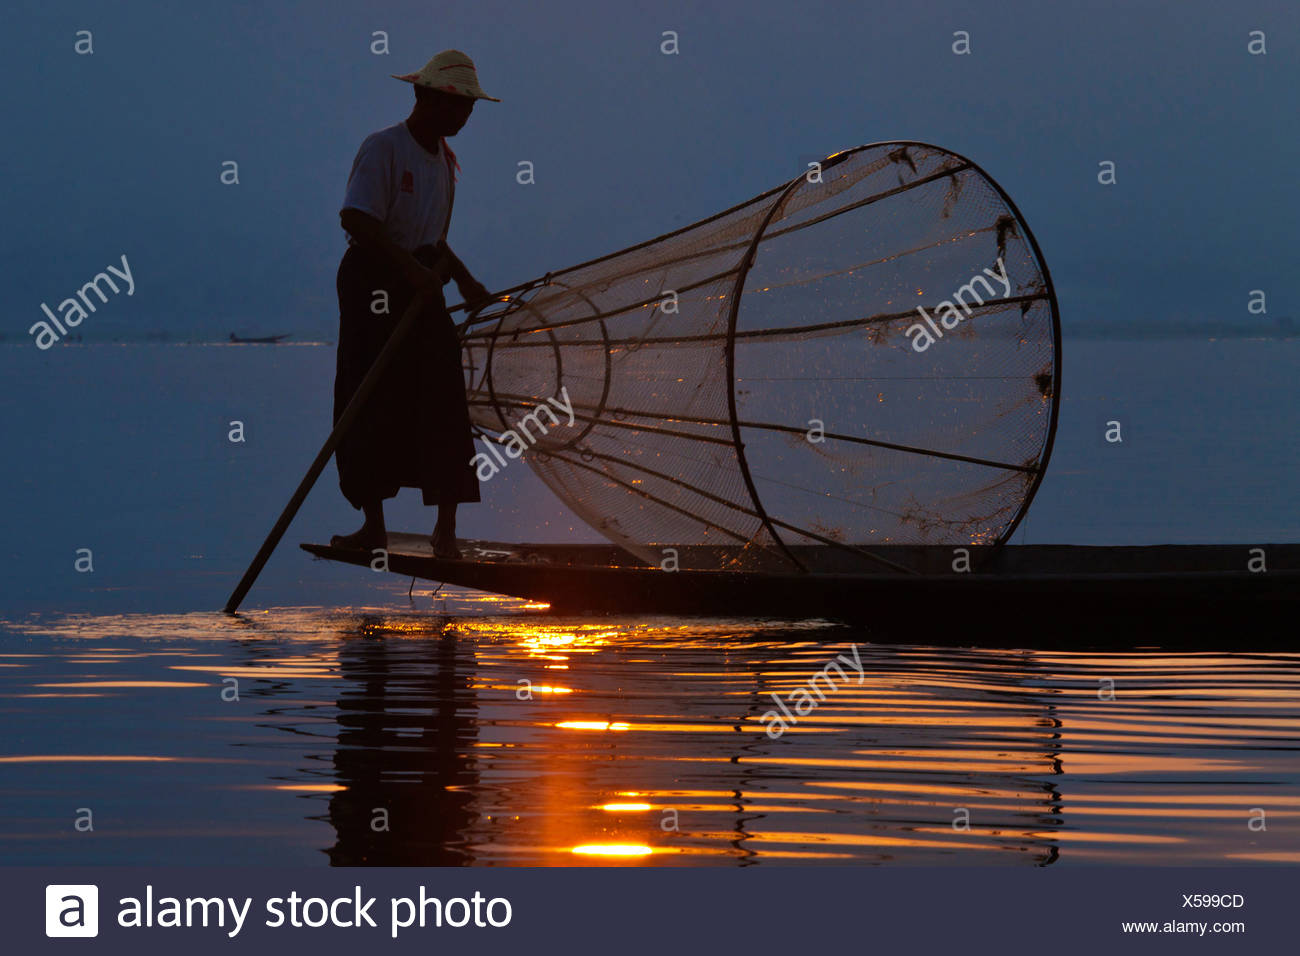 fisher man at dawn is still done in the traditonal way with small wooden boats, fishing nets and leg rowing, Inle lake, Burma, Inle See - Stock Image